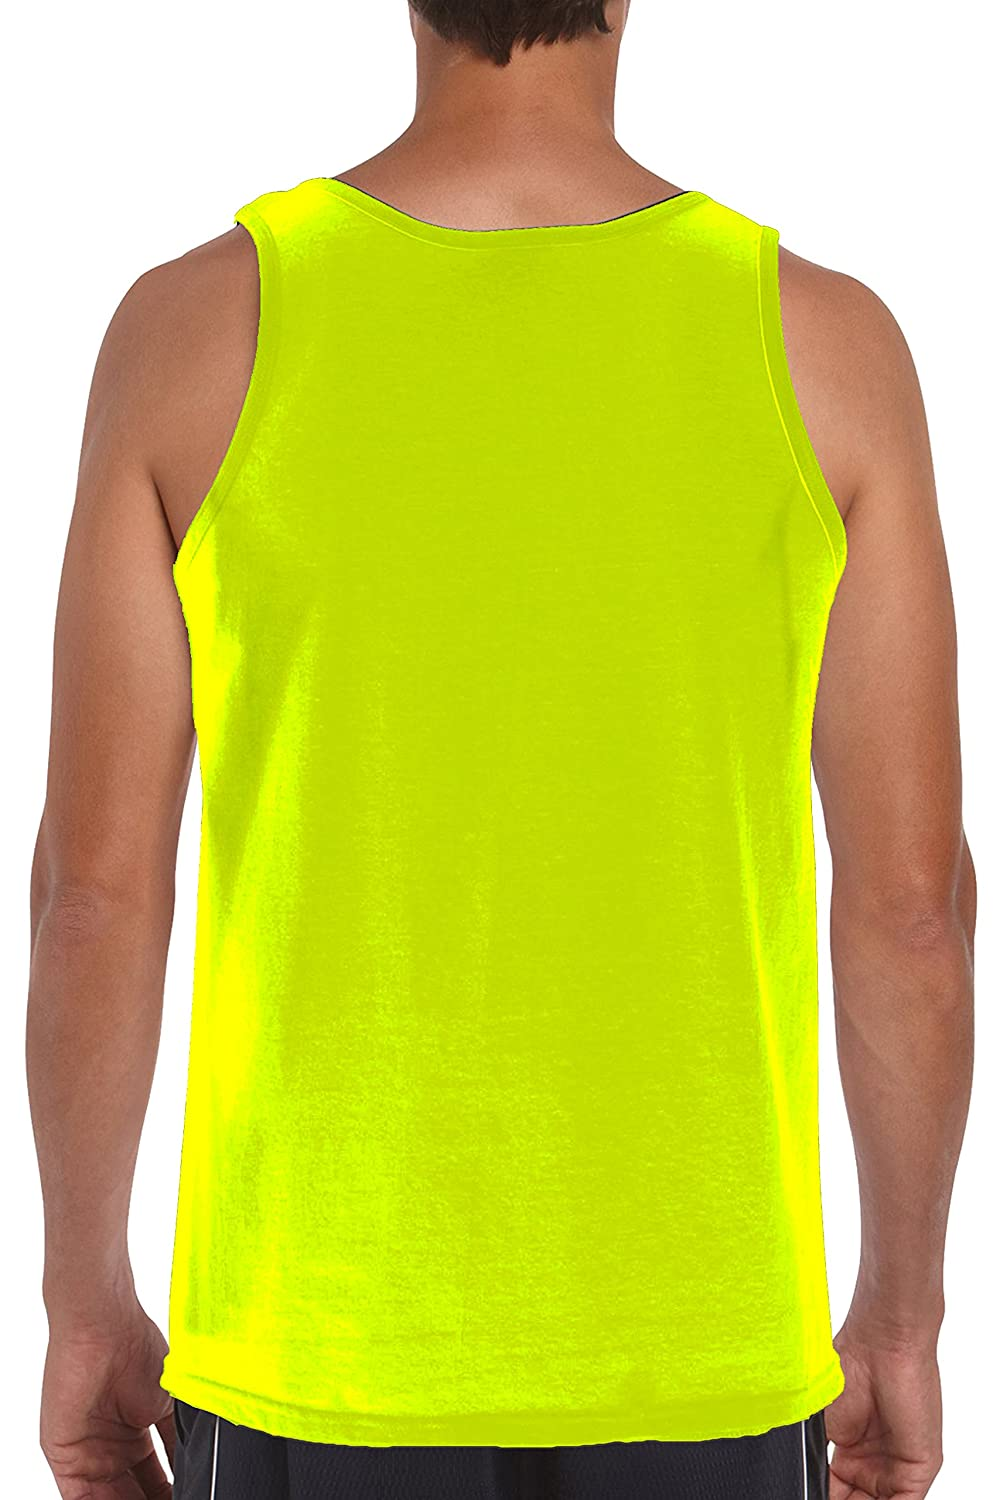 Mens I Flexed and The Sleeves Fell Off Tank Top Shirt